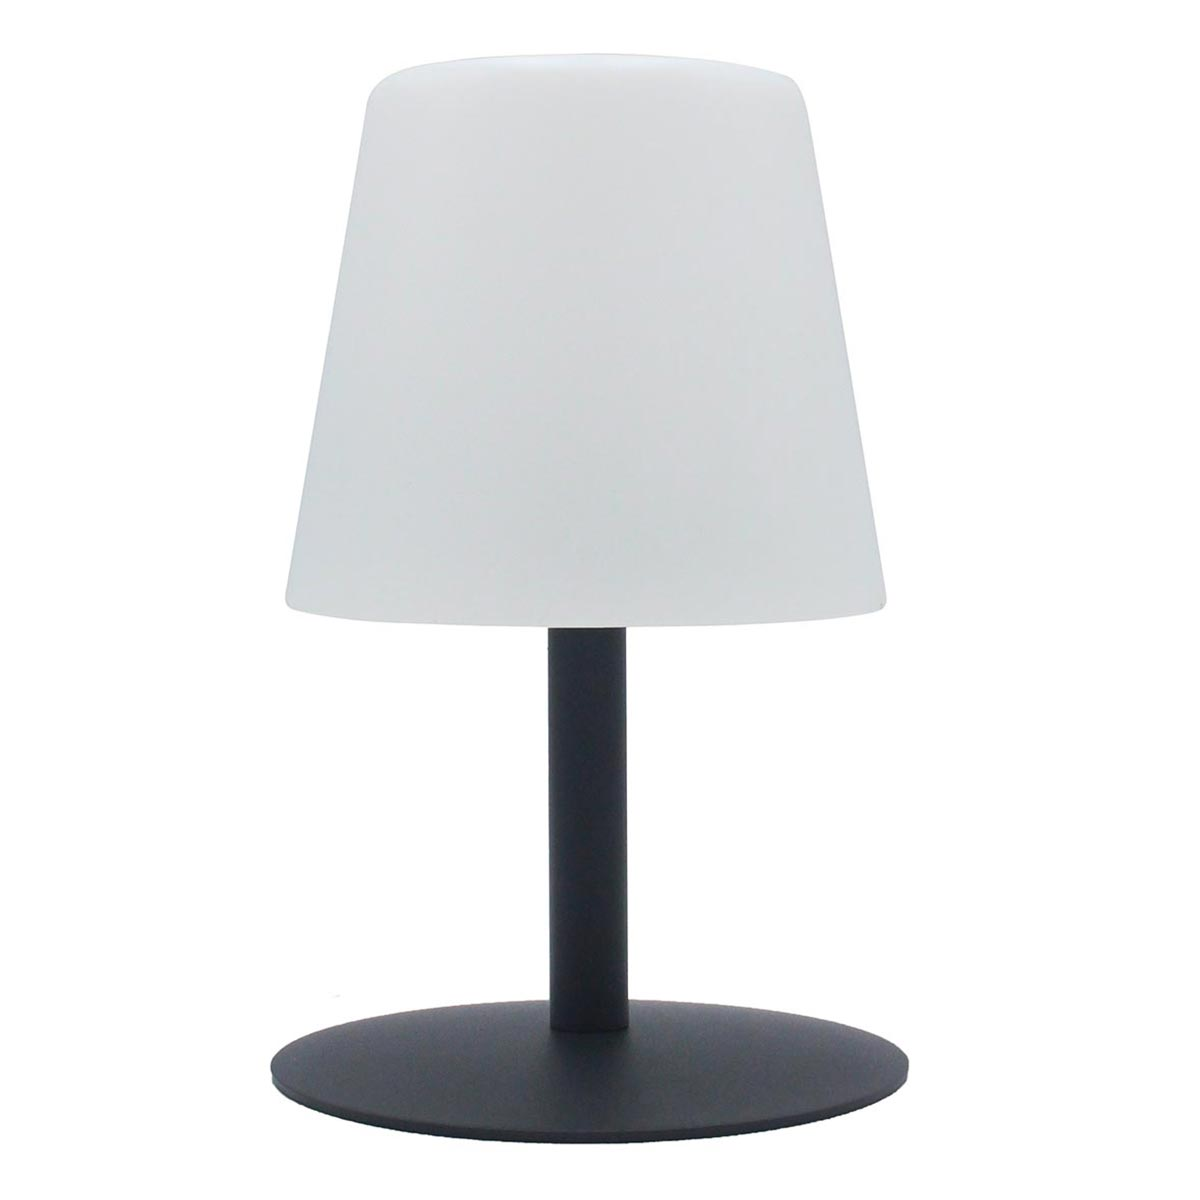 Lampe de table sans fil pied en acier gris LED blanc chaud/blanc dimmable STANDY MINI Rock H25cm - REDDECO.com